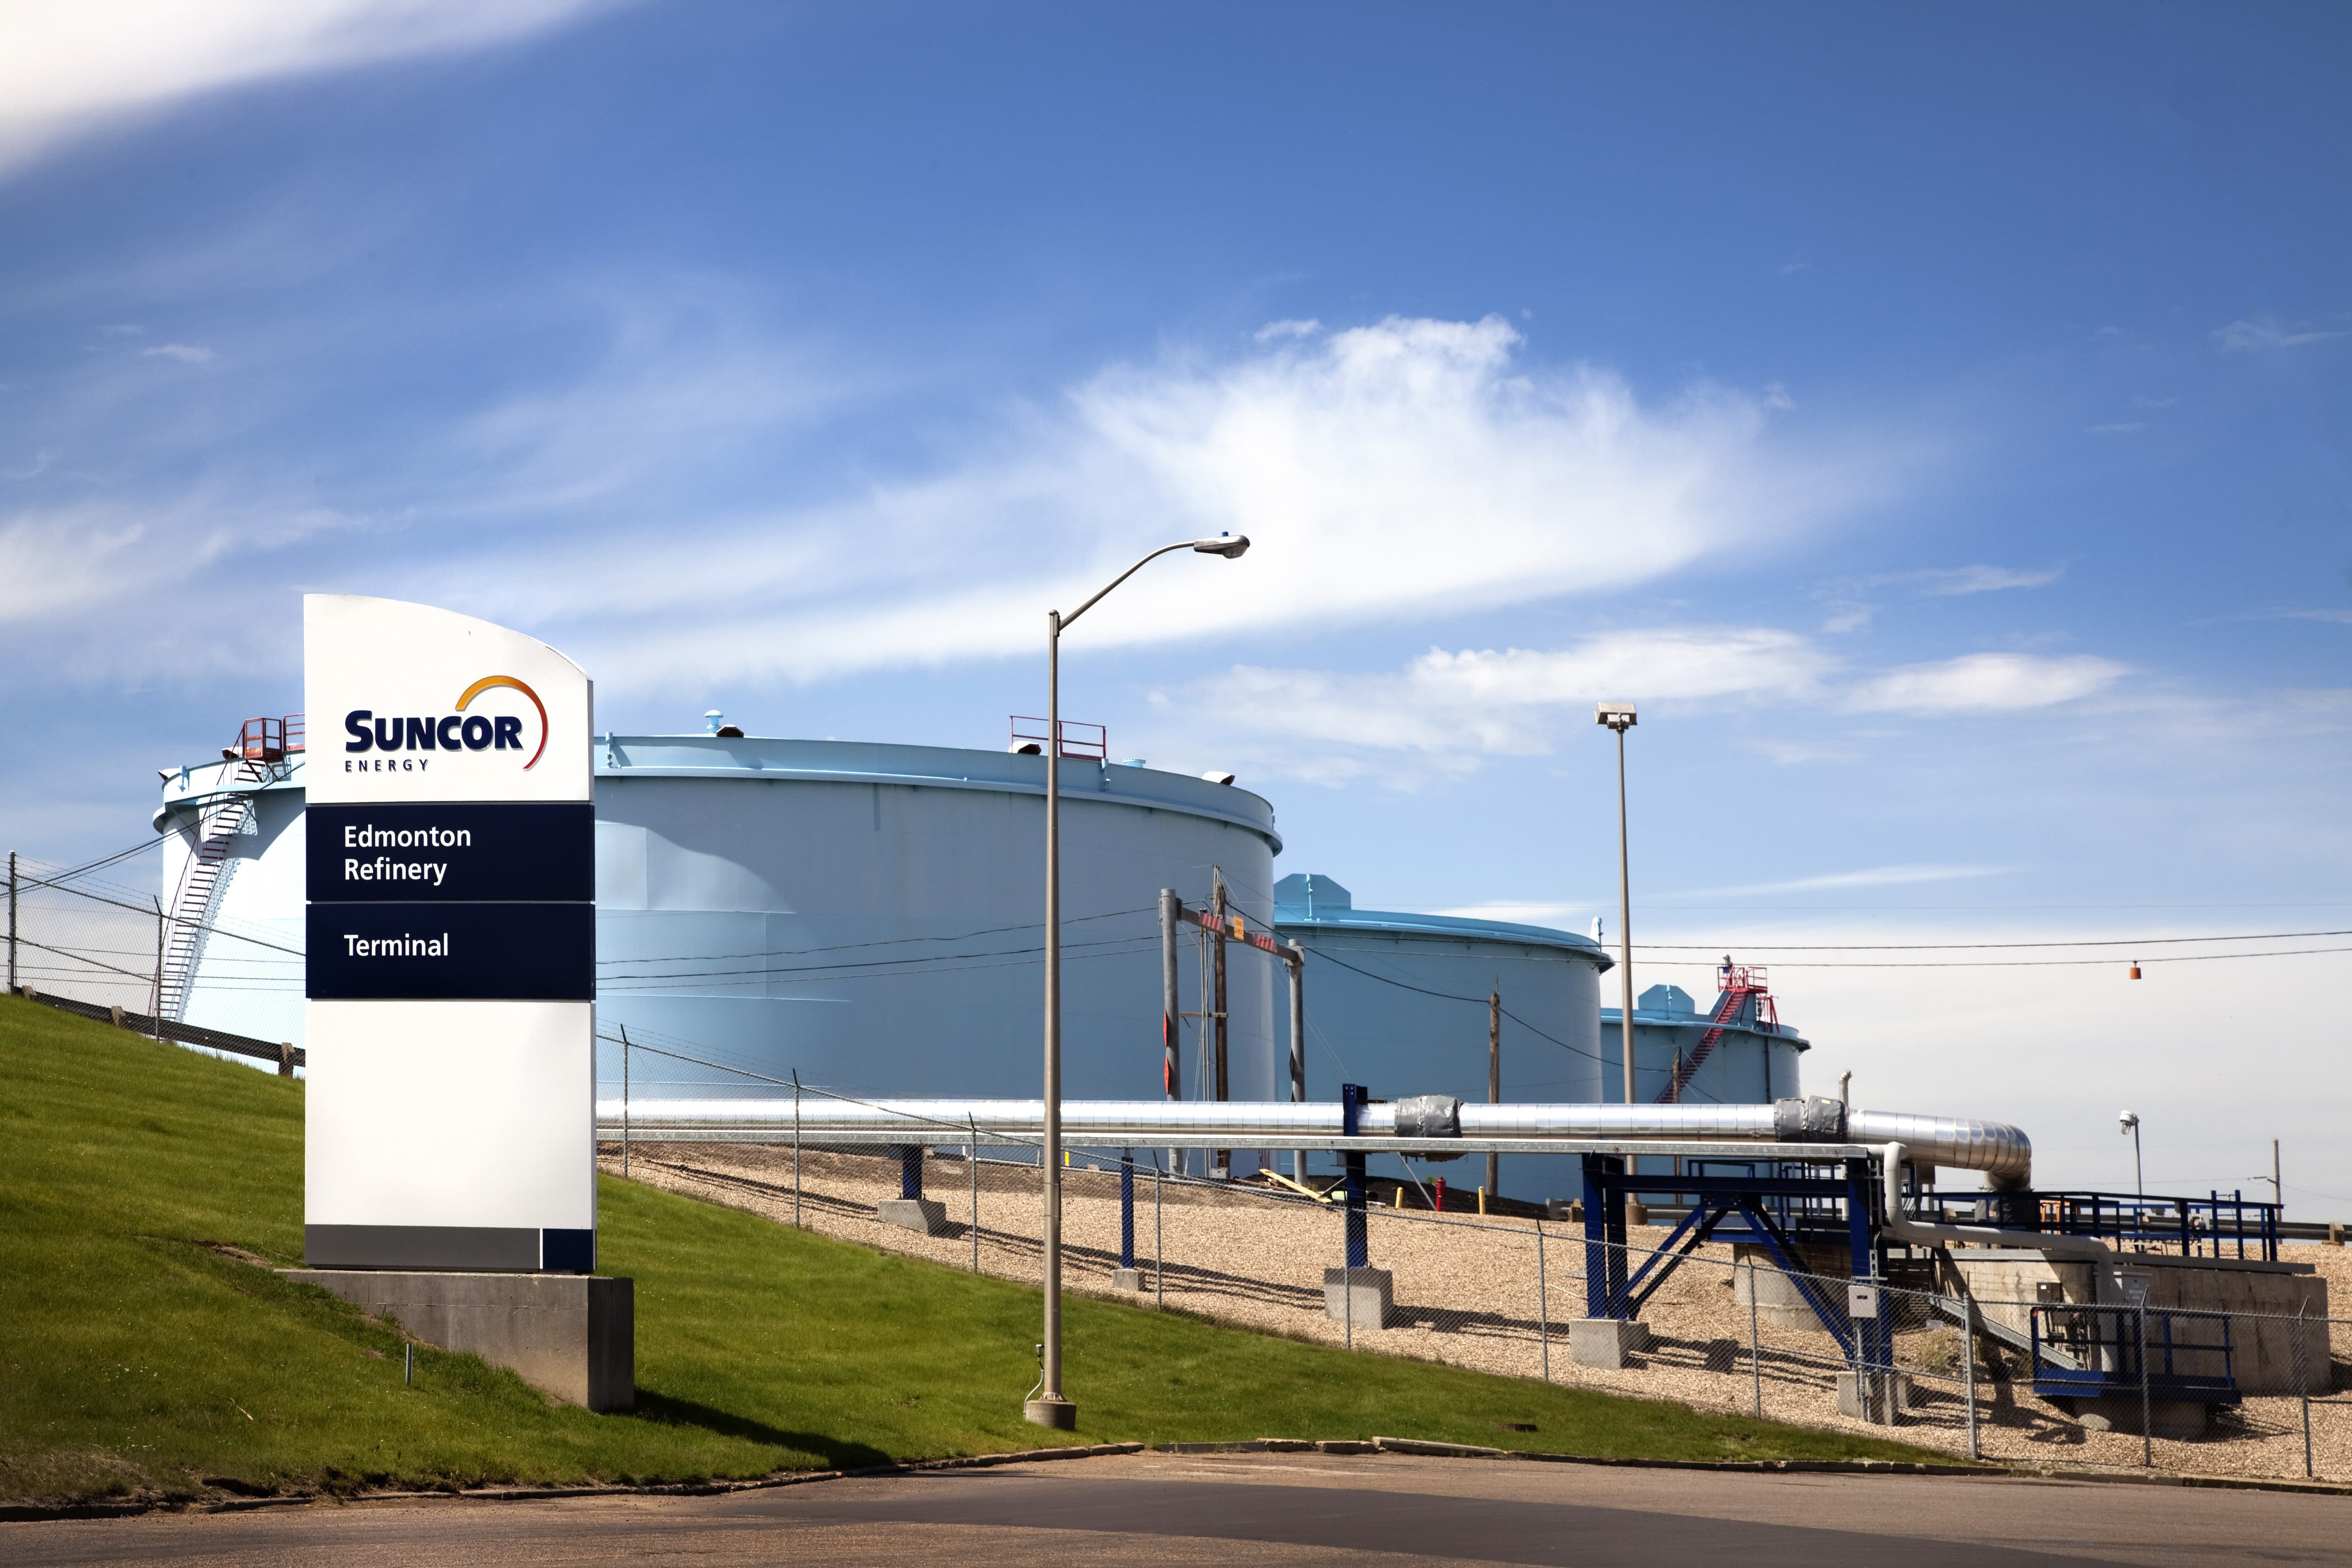 Image has a blue sky background, and the Edmonton refinery with four hydrogen tanks and a Suncor sign in front